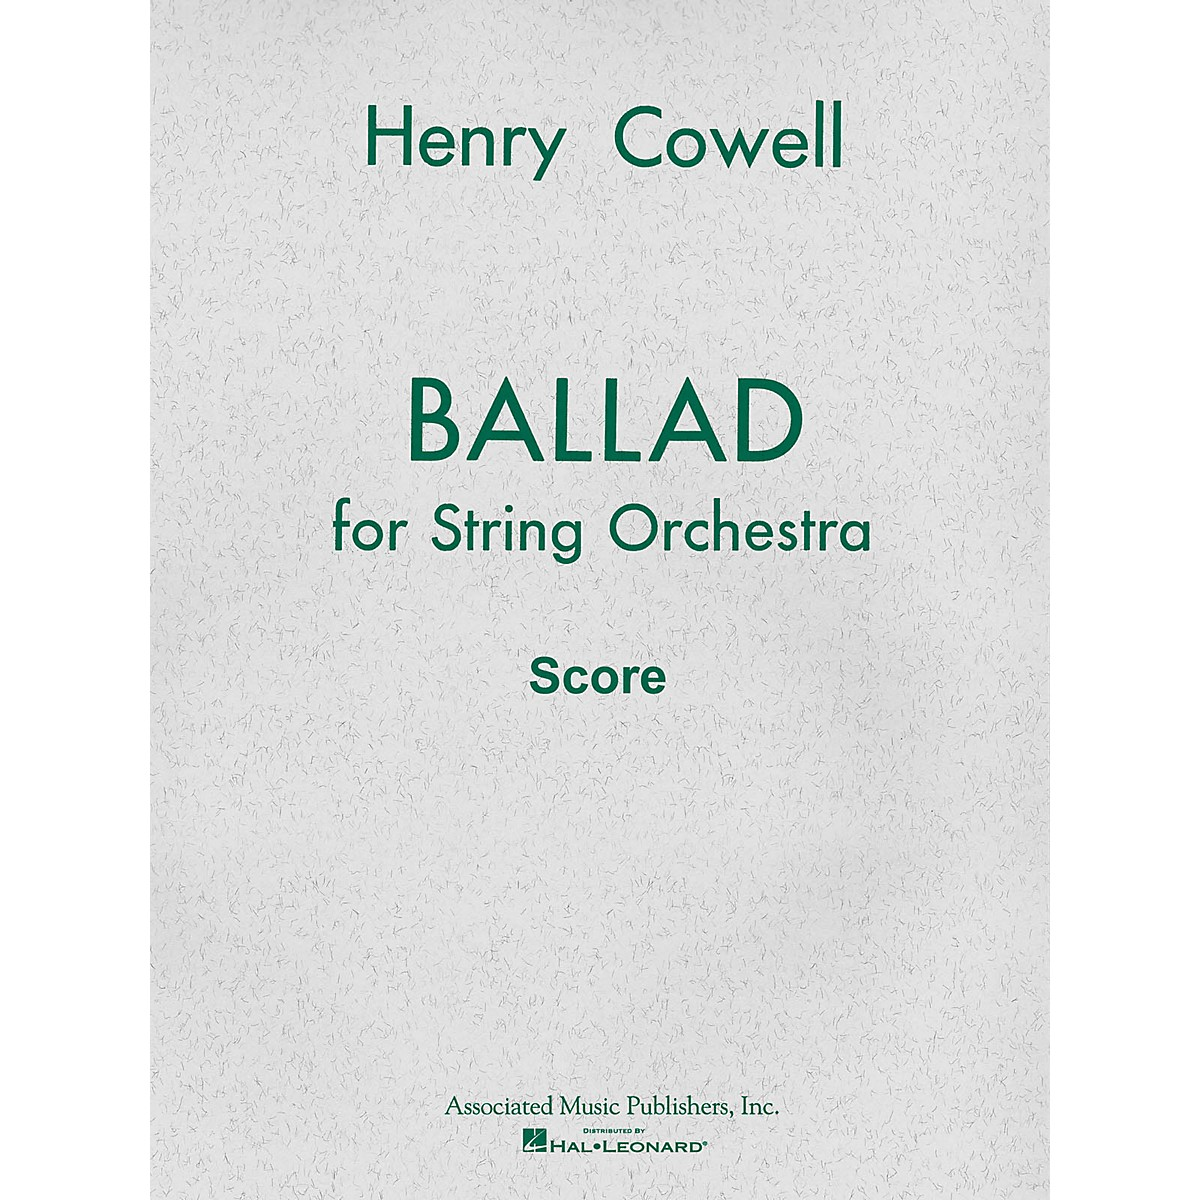 Associated Ballad (1954) for String Orchestra (Full Score) Study Score Series Composed by Henry Cowell